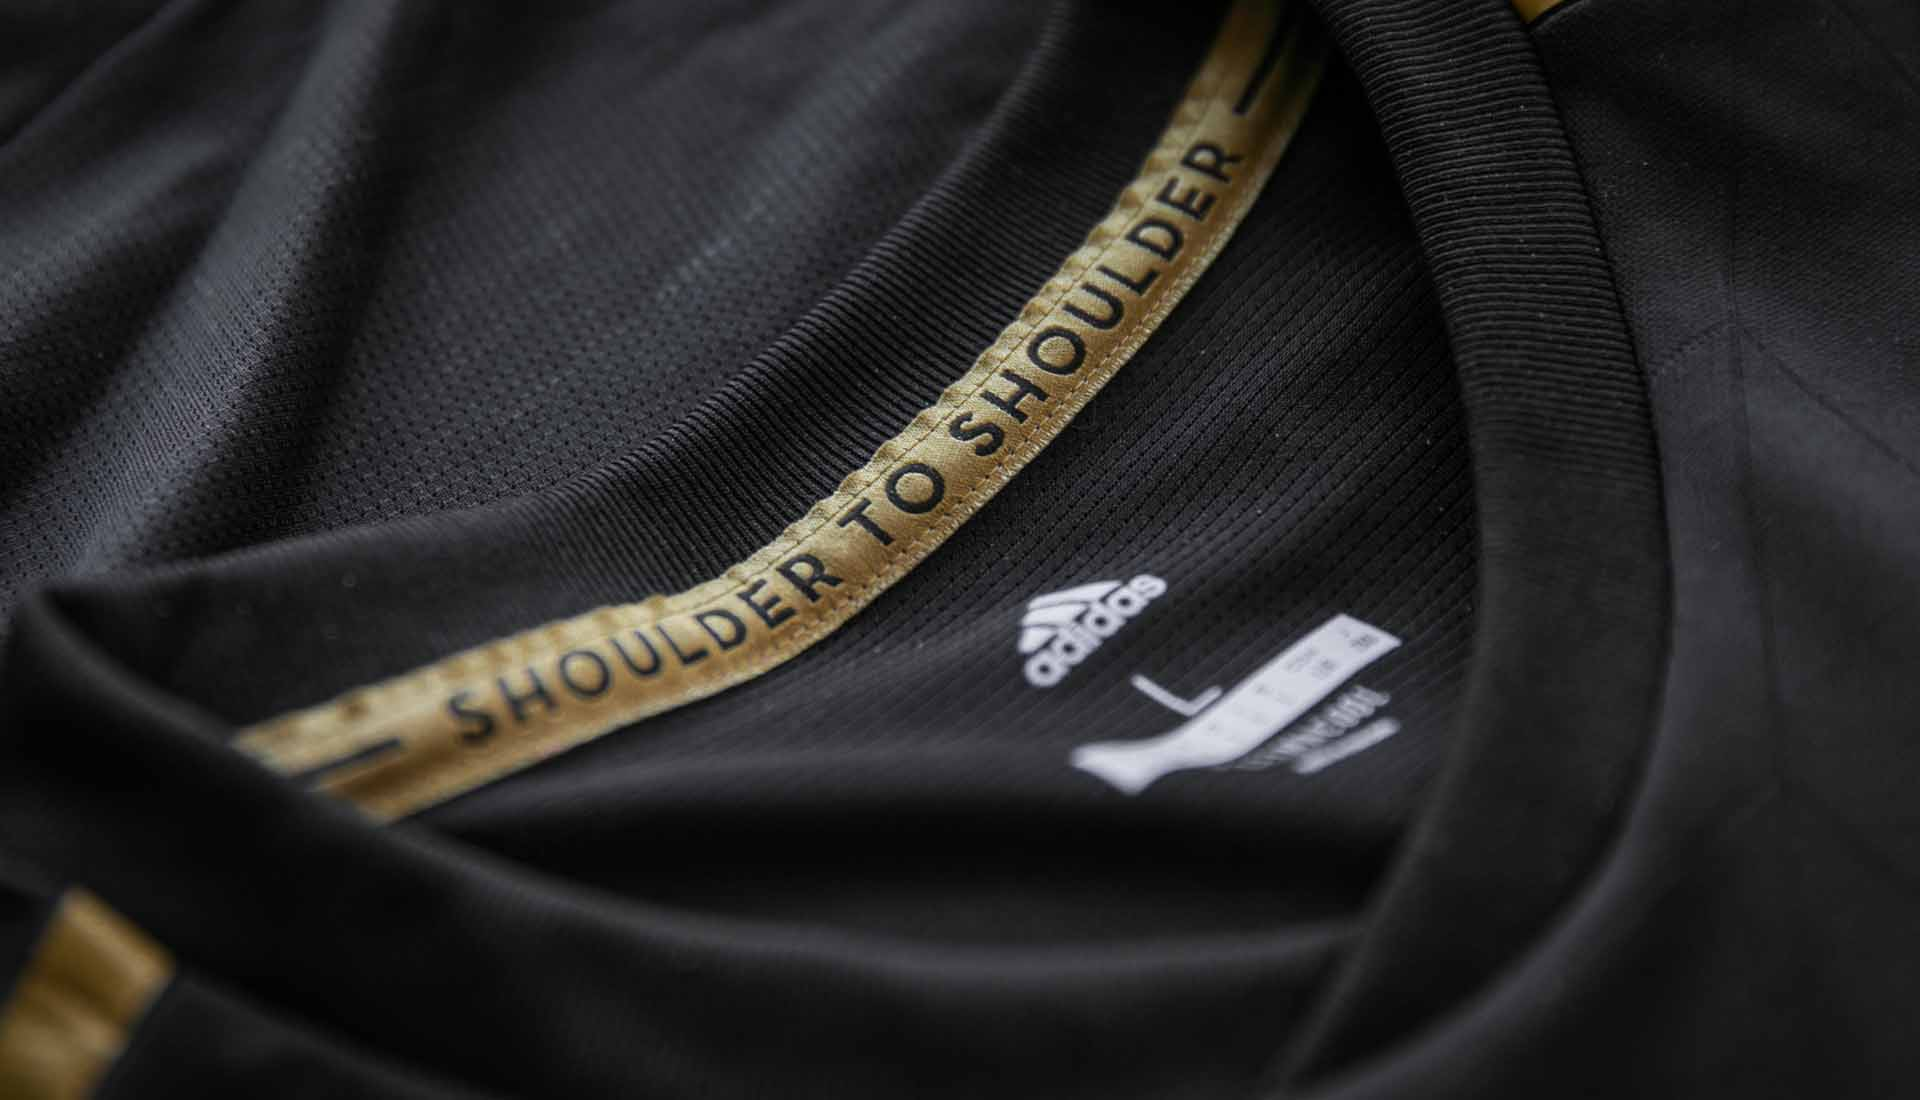 lafc-kit-interview-6.jpg